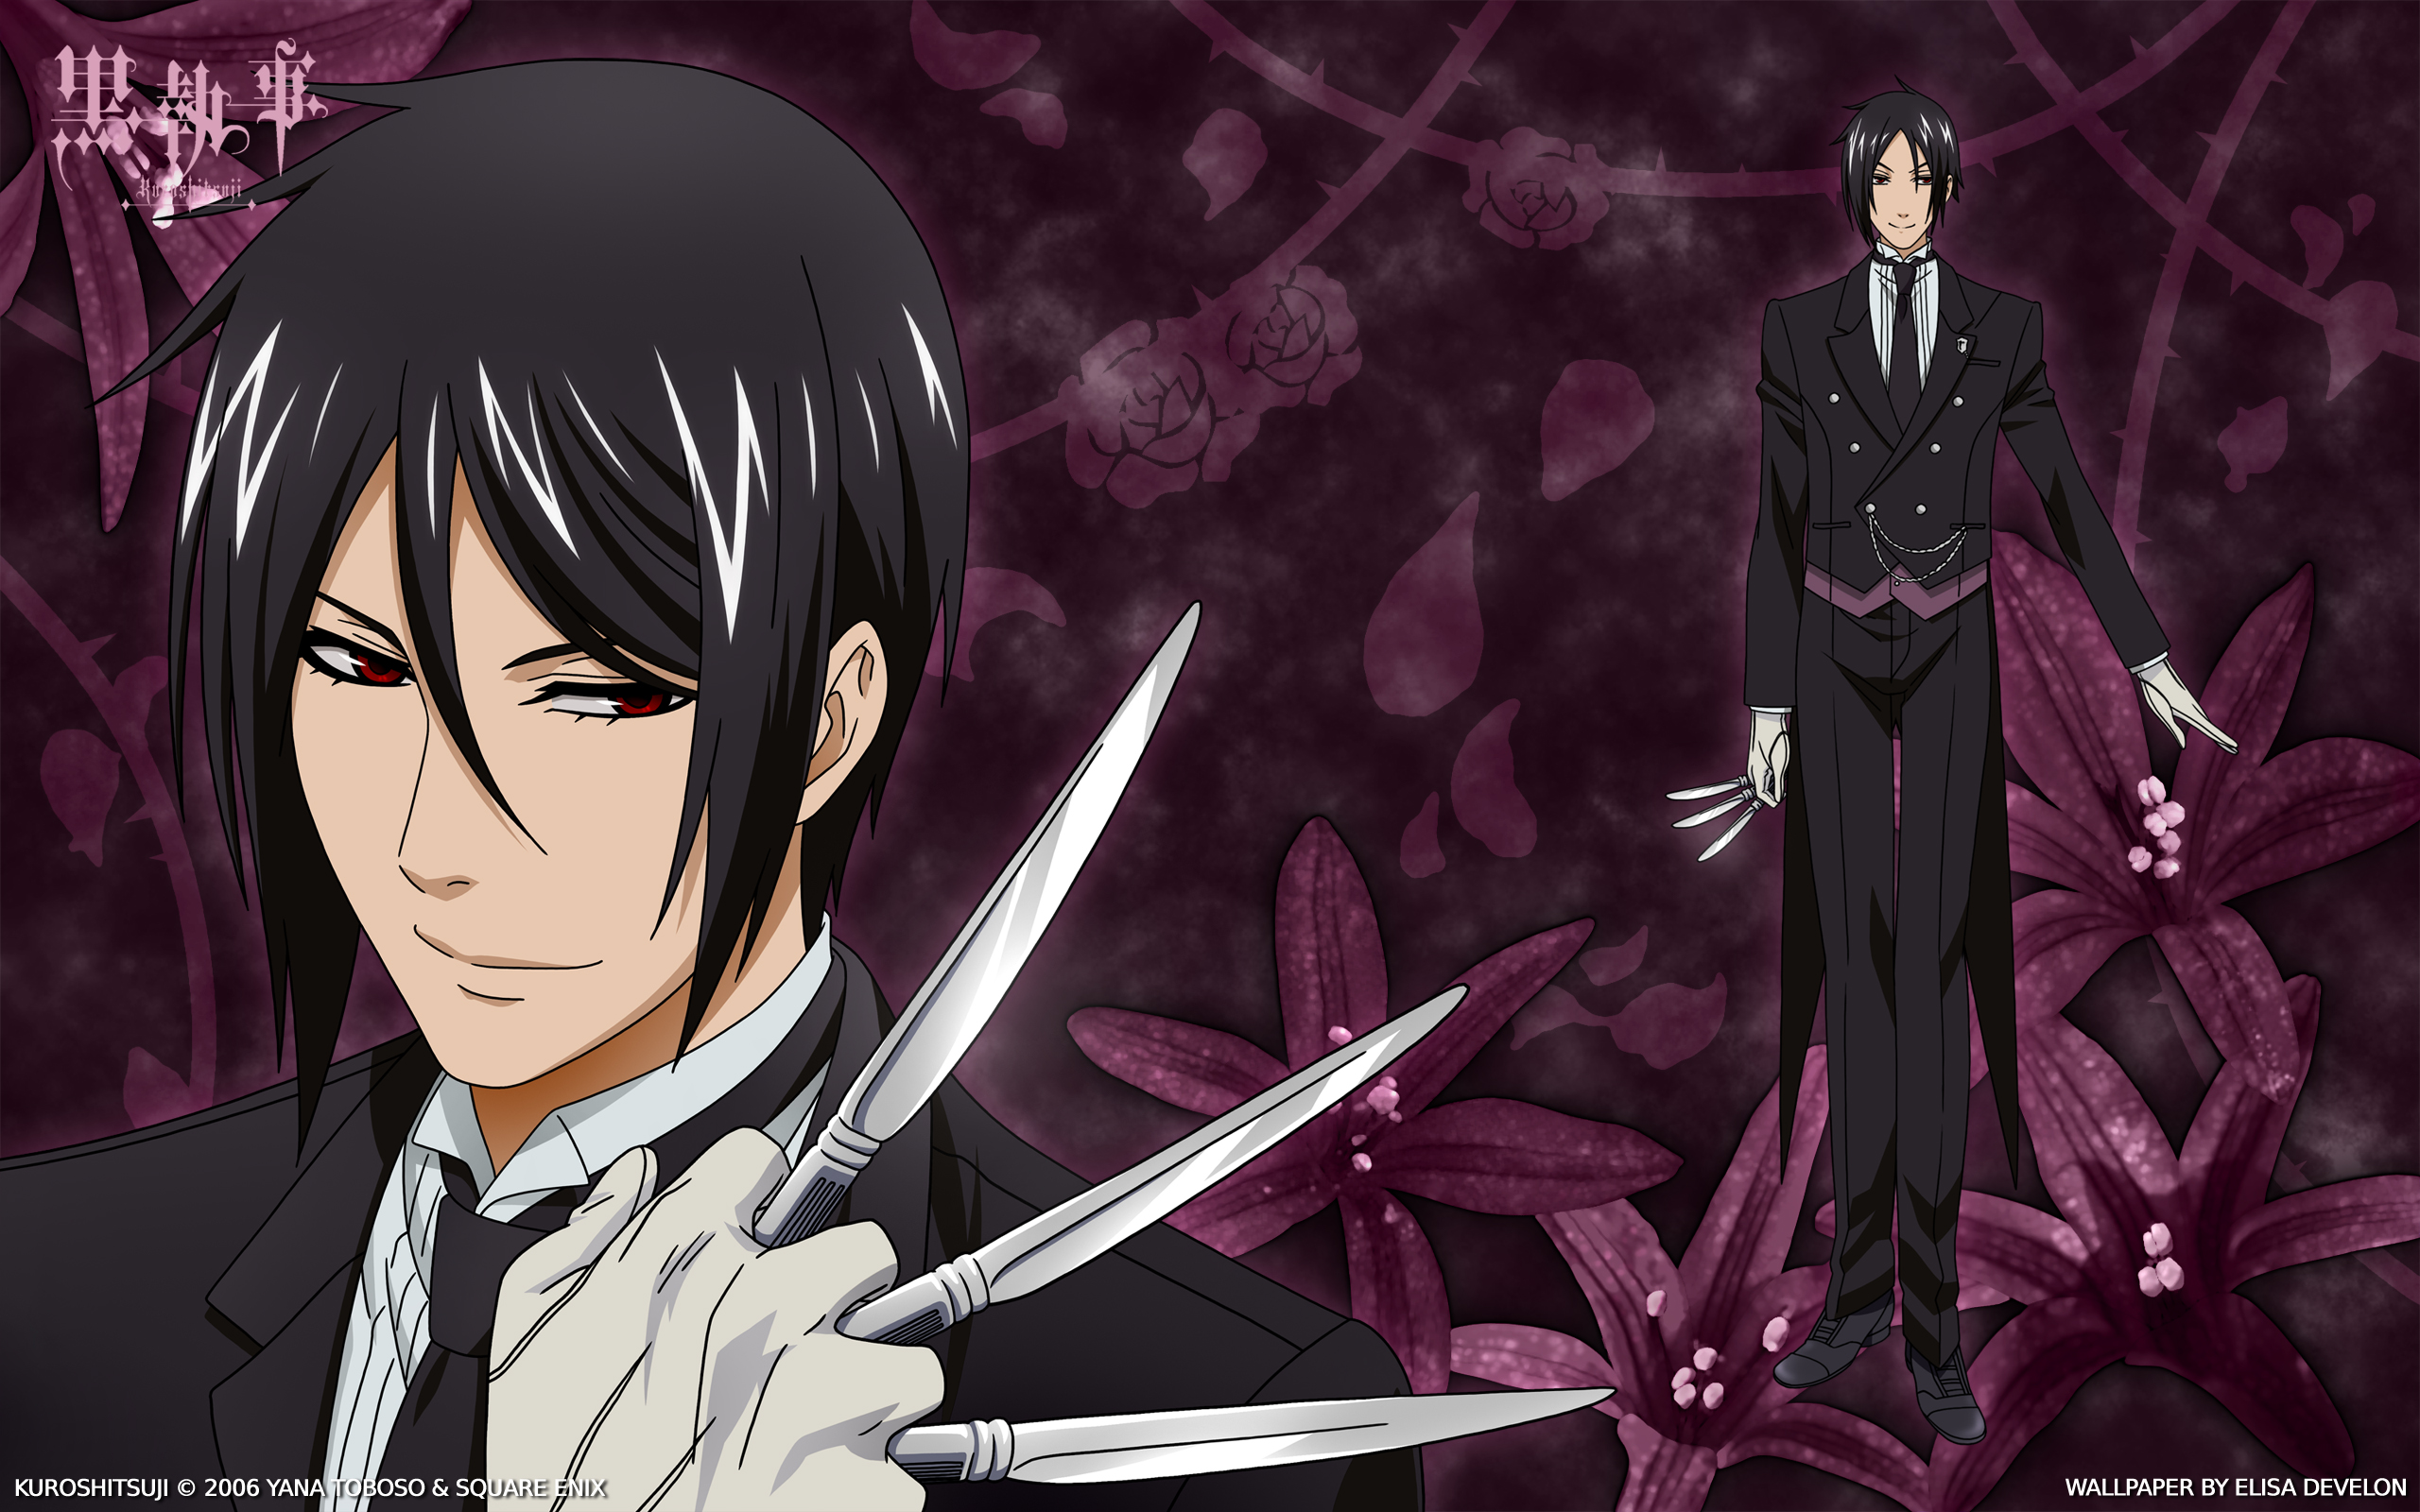 tags anime kuroshitsuji sebastian michaelis 2560x1600 wallpaper edited hd wallpaper